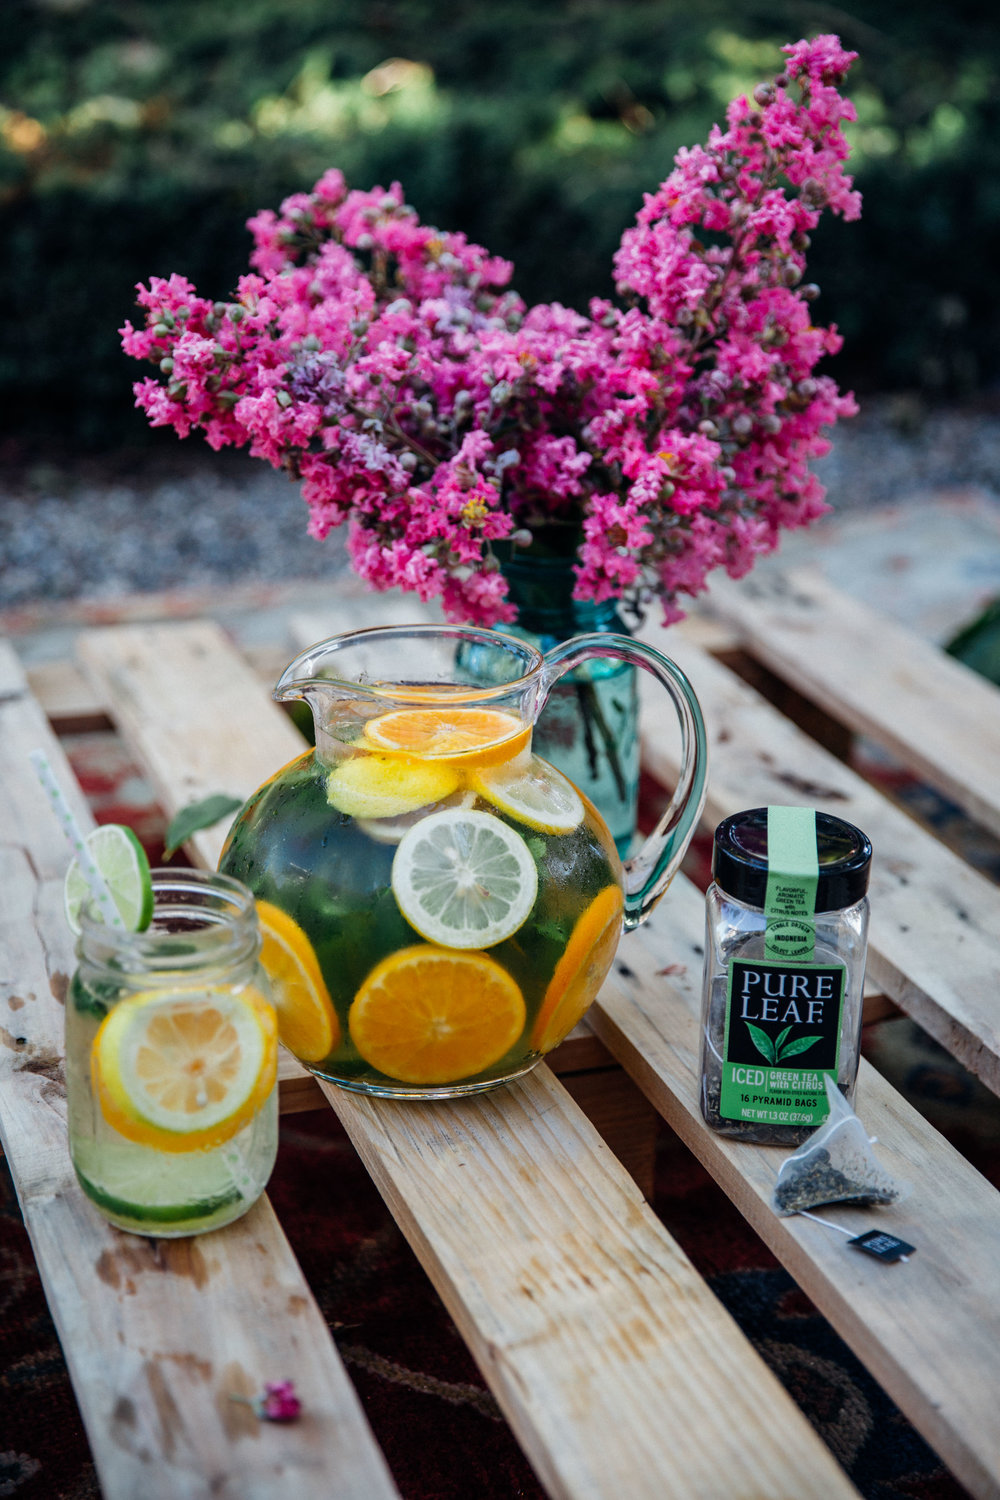 Pure Leaf Iced Green Tea with Citrus Flavor - by Madeline Lu - @lumadeline